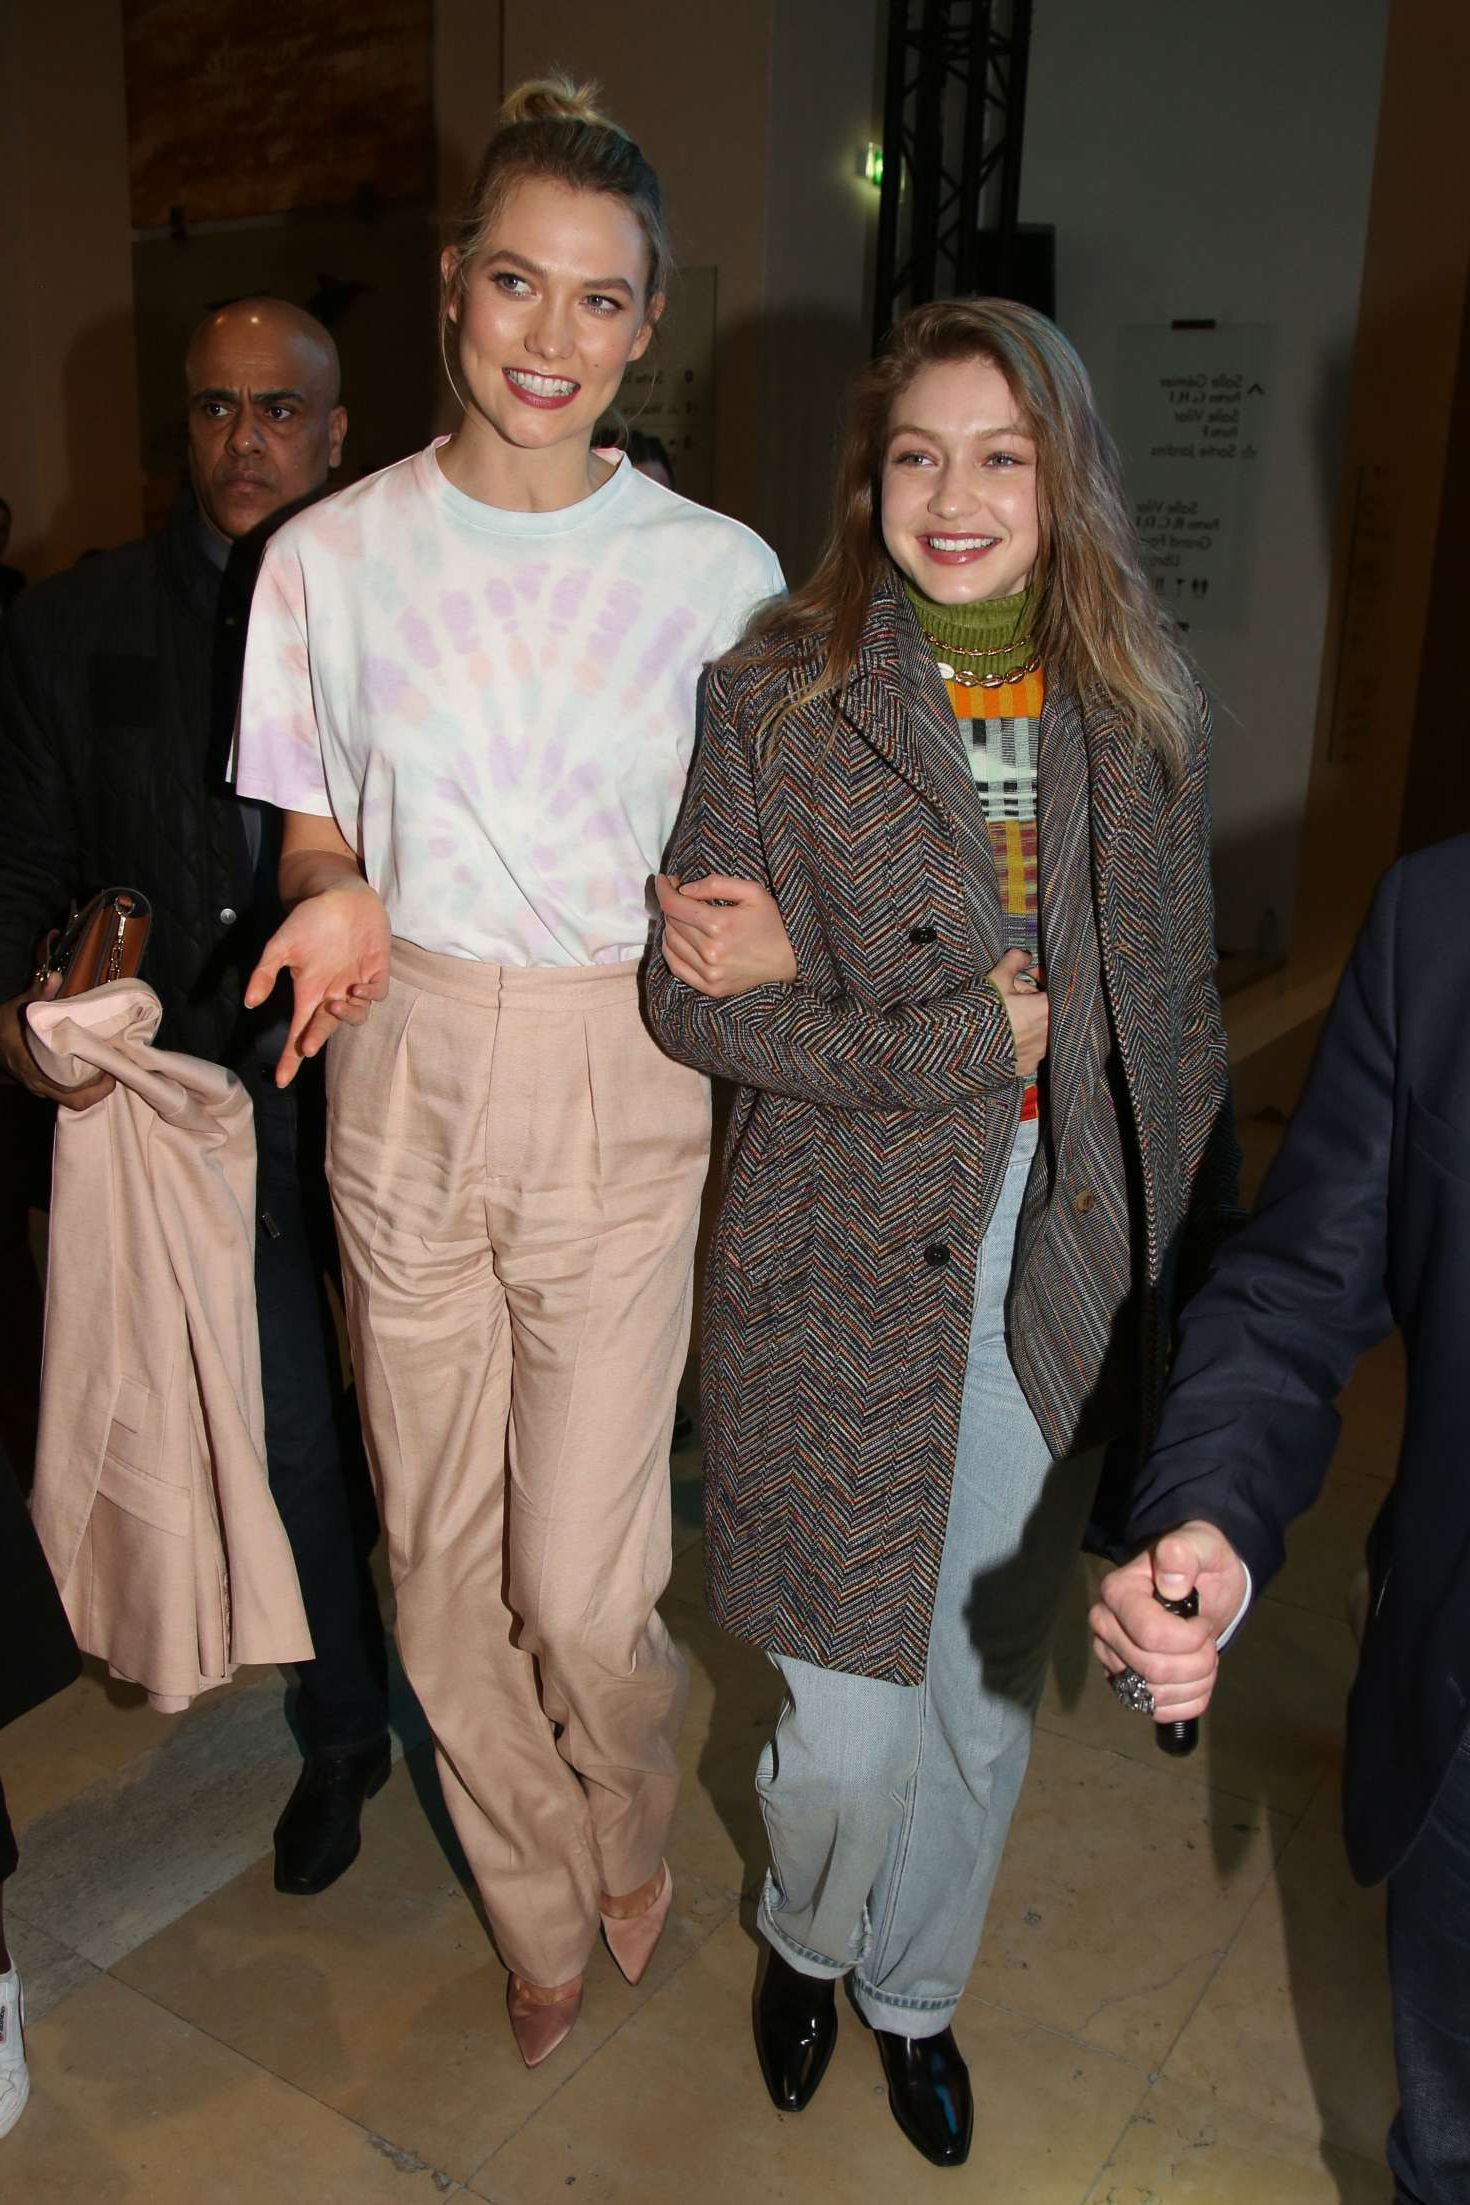 Karlie Kloss and Gigi Hadid are very happy to appear at the Evian x Virgil Party, 2019